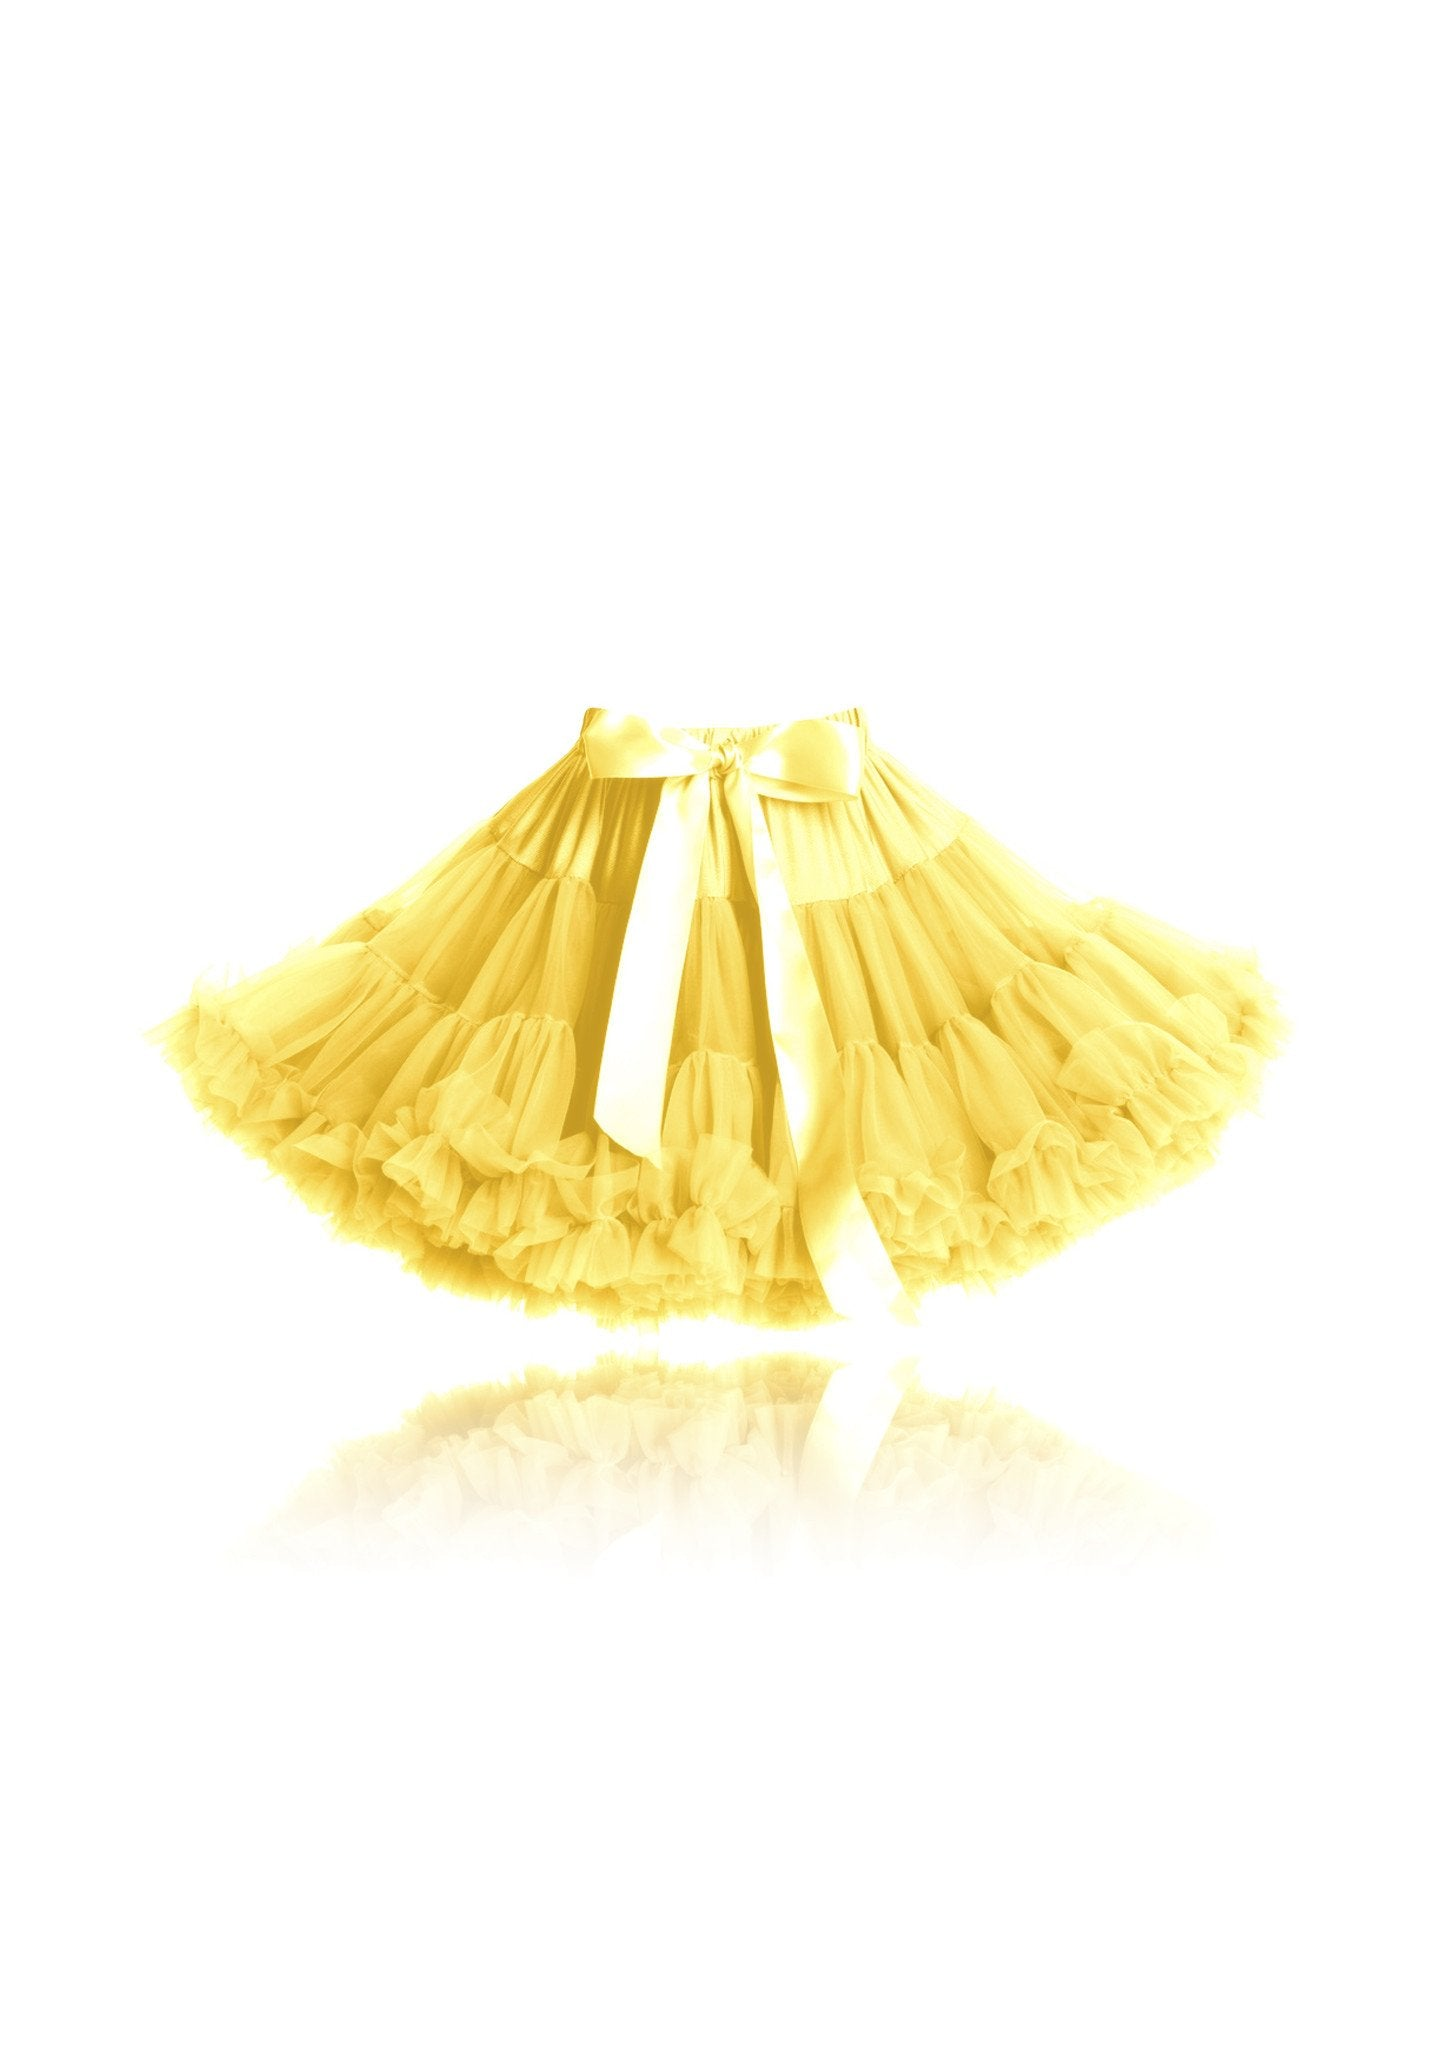 DOLLY by Le Petit Tom ® RUMPELSTILTSKIN pettiskirt yellow - DOLLY by Le Petit Tom ®